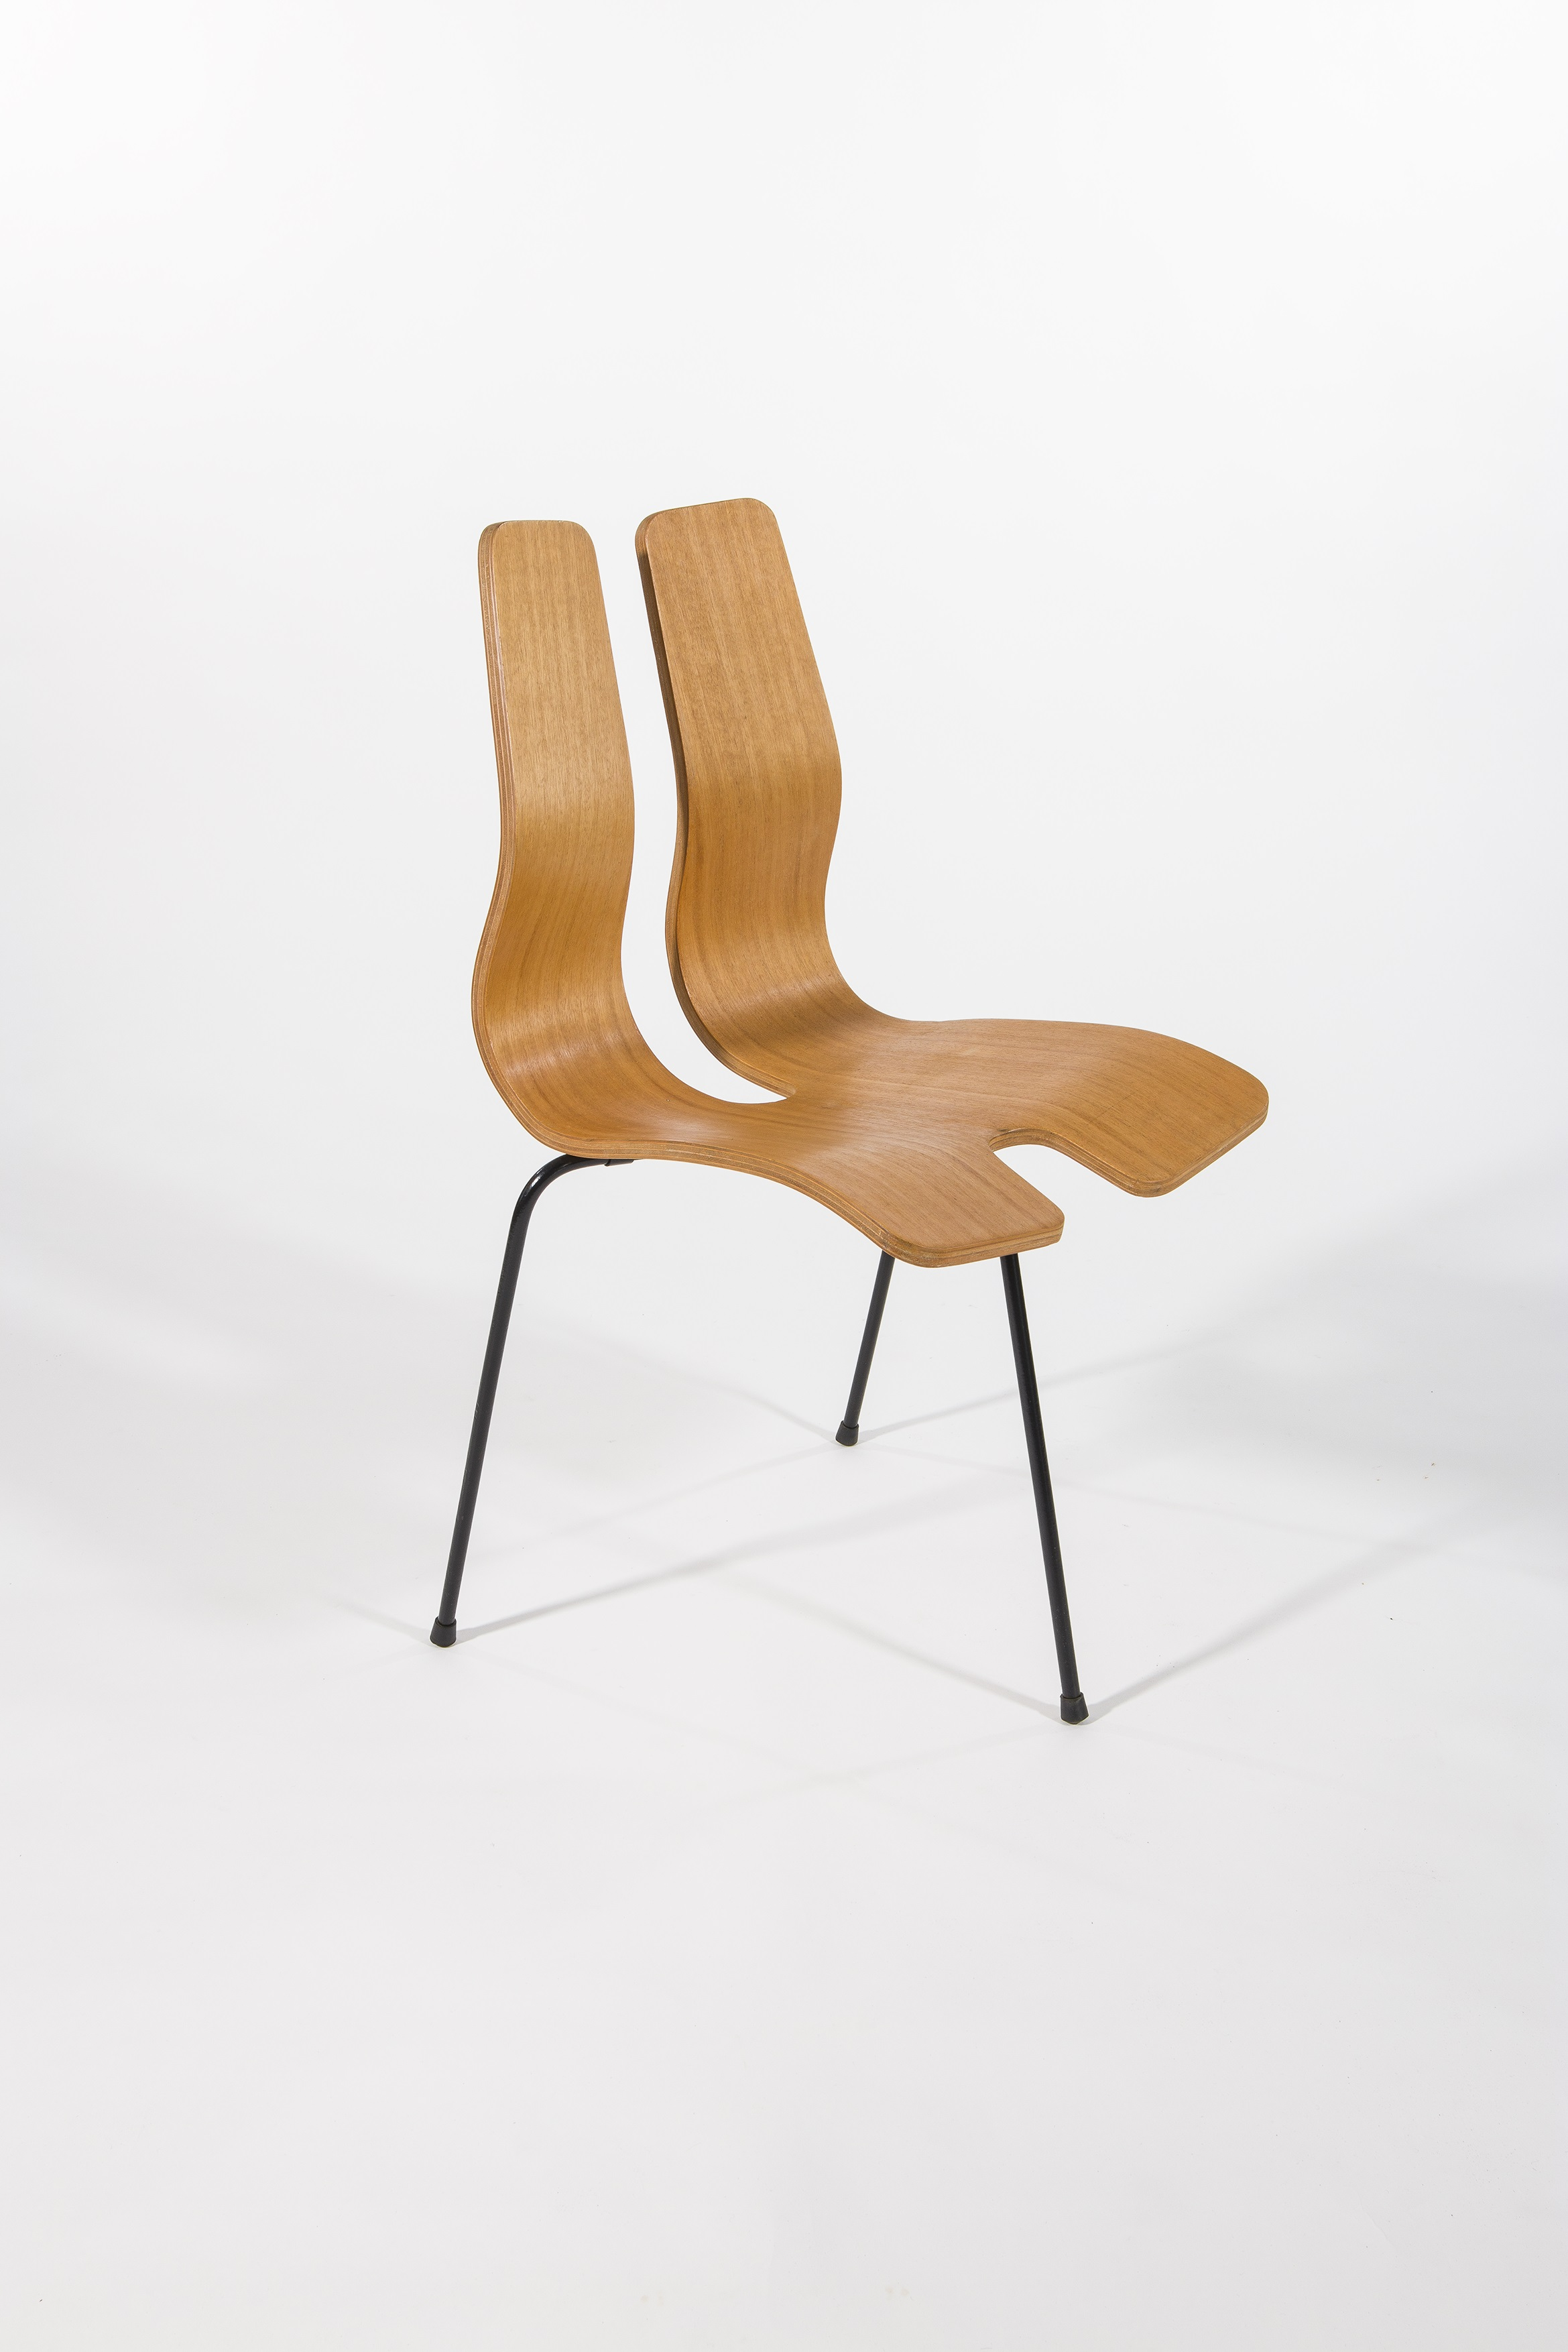 CADABBRA.COM.AU_Clement Meadmore- The Art of Mid-Century Design_3.jpg